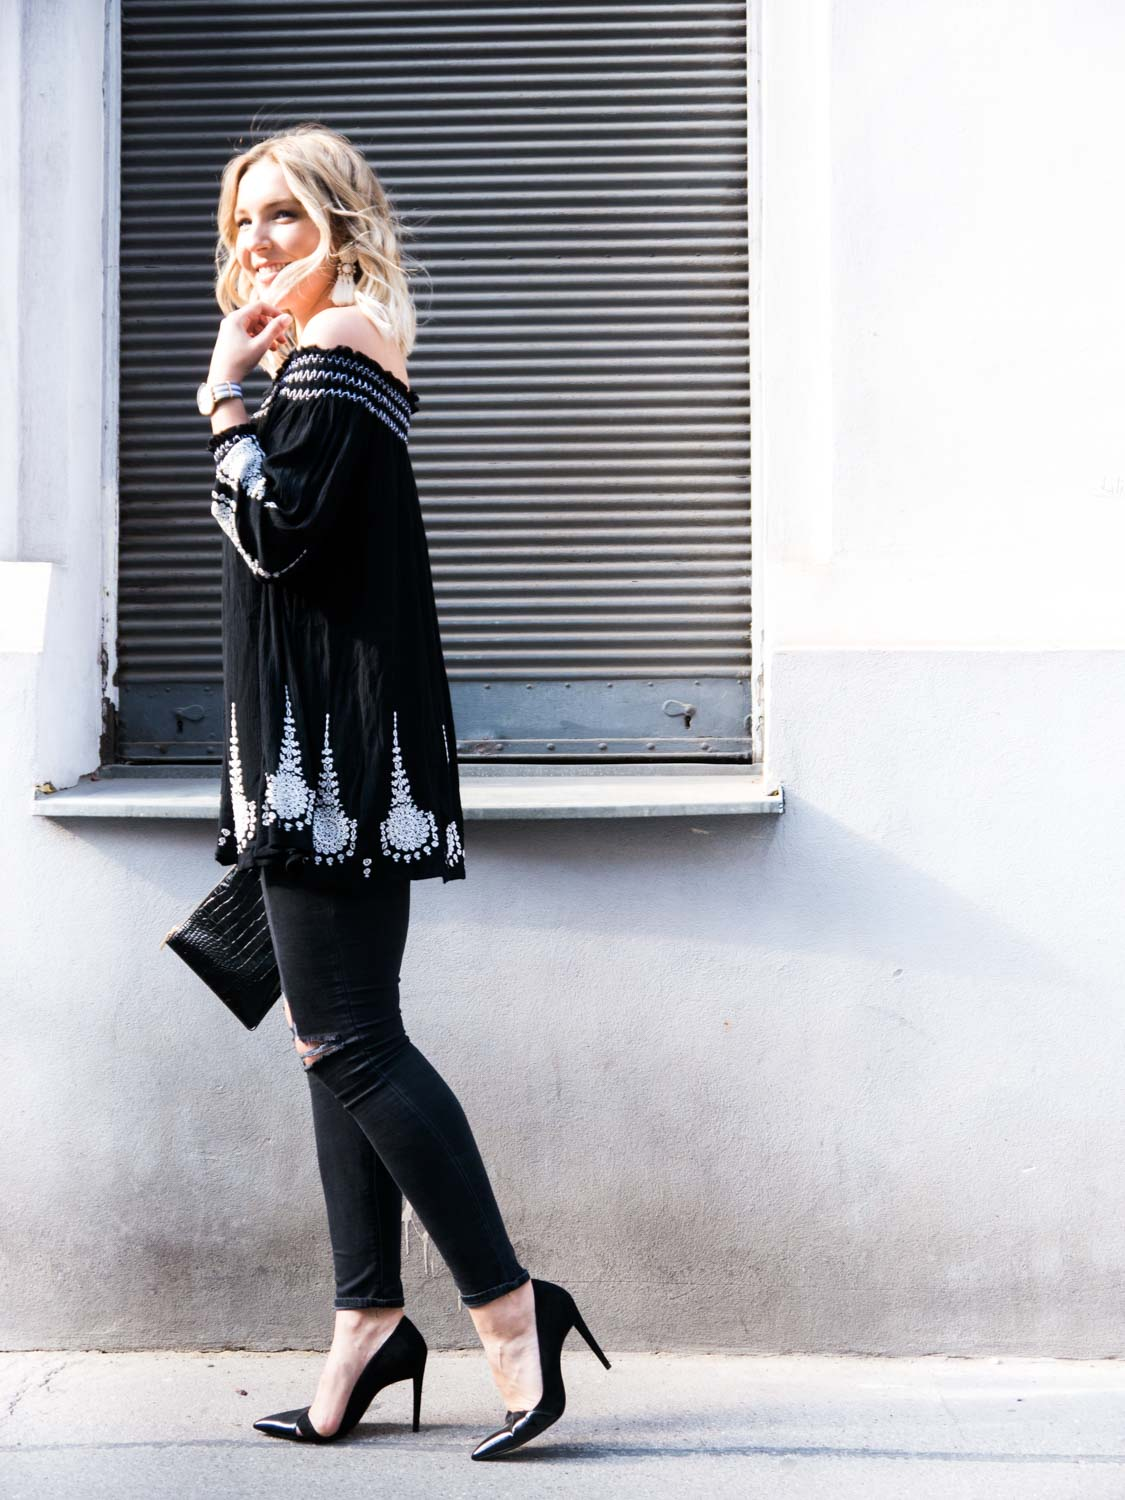 Blog-Your-Style-Outfit-Fashionshooting-Streetstyle-Off-Shoulder-Trend-Fashionblog-Austria-Giveherglitter-ripped-Jeans-5